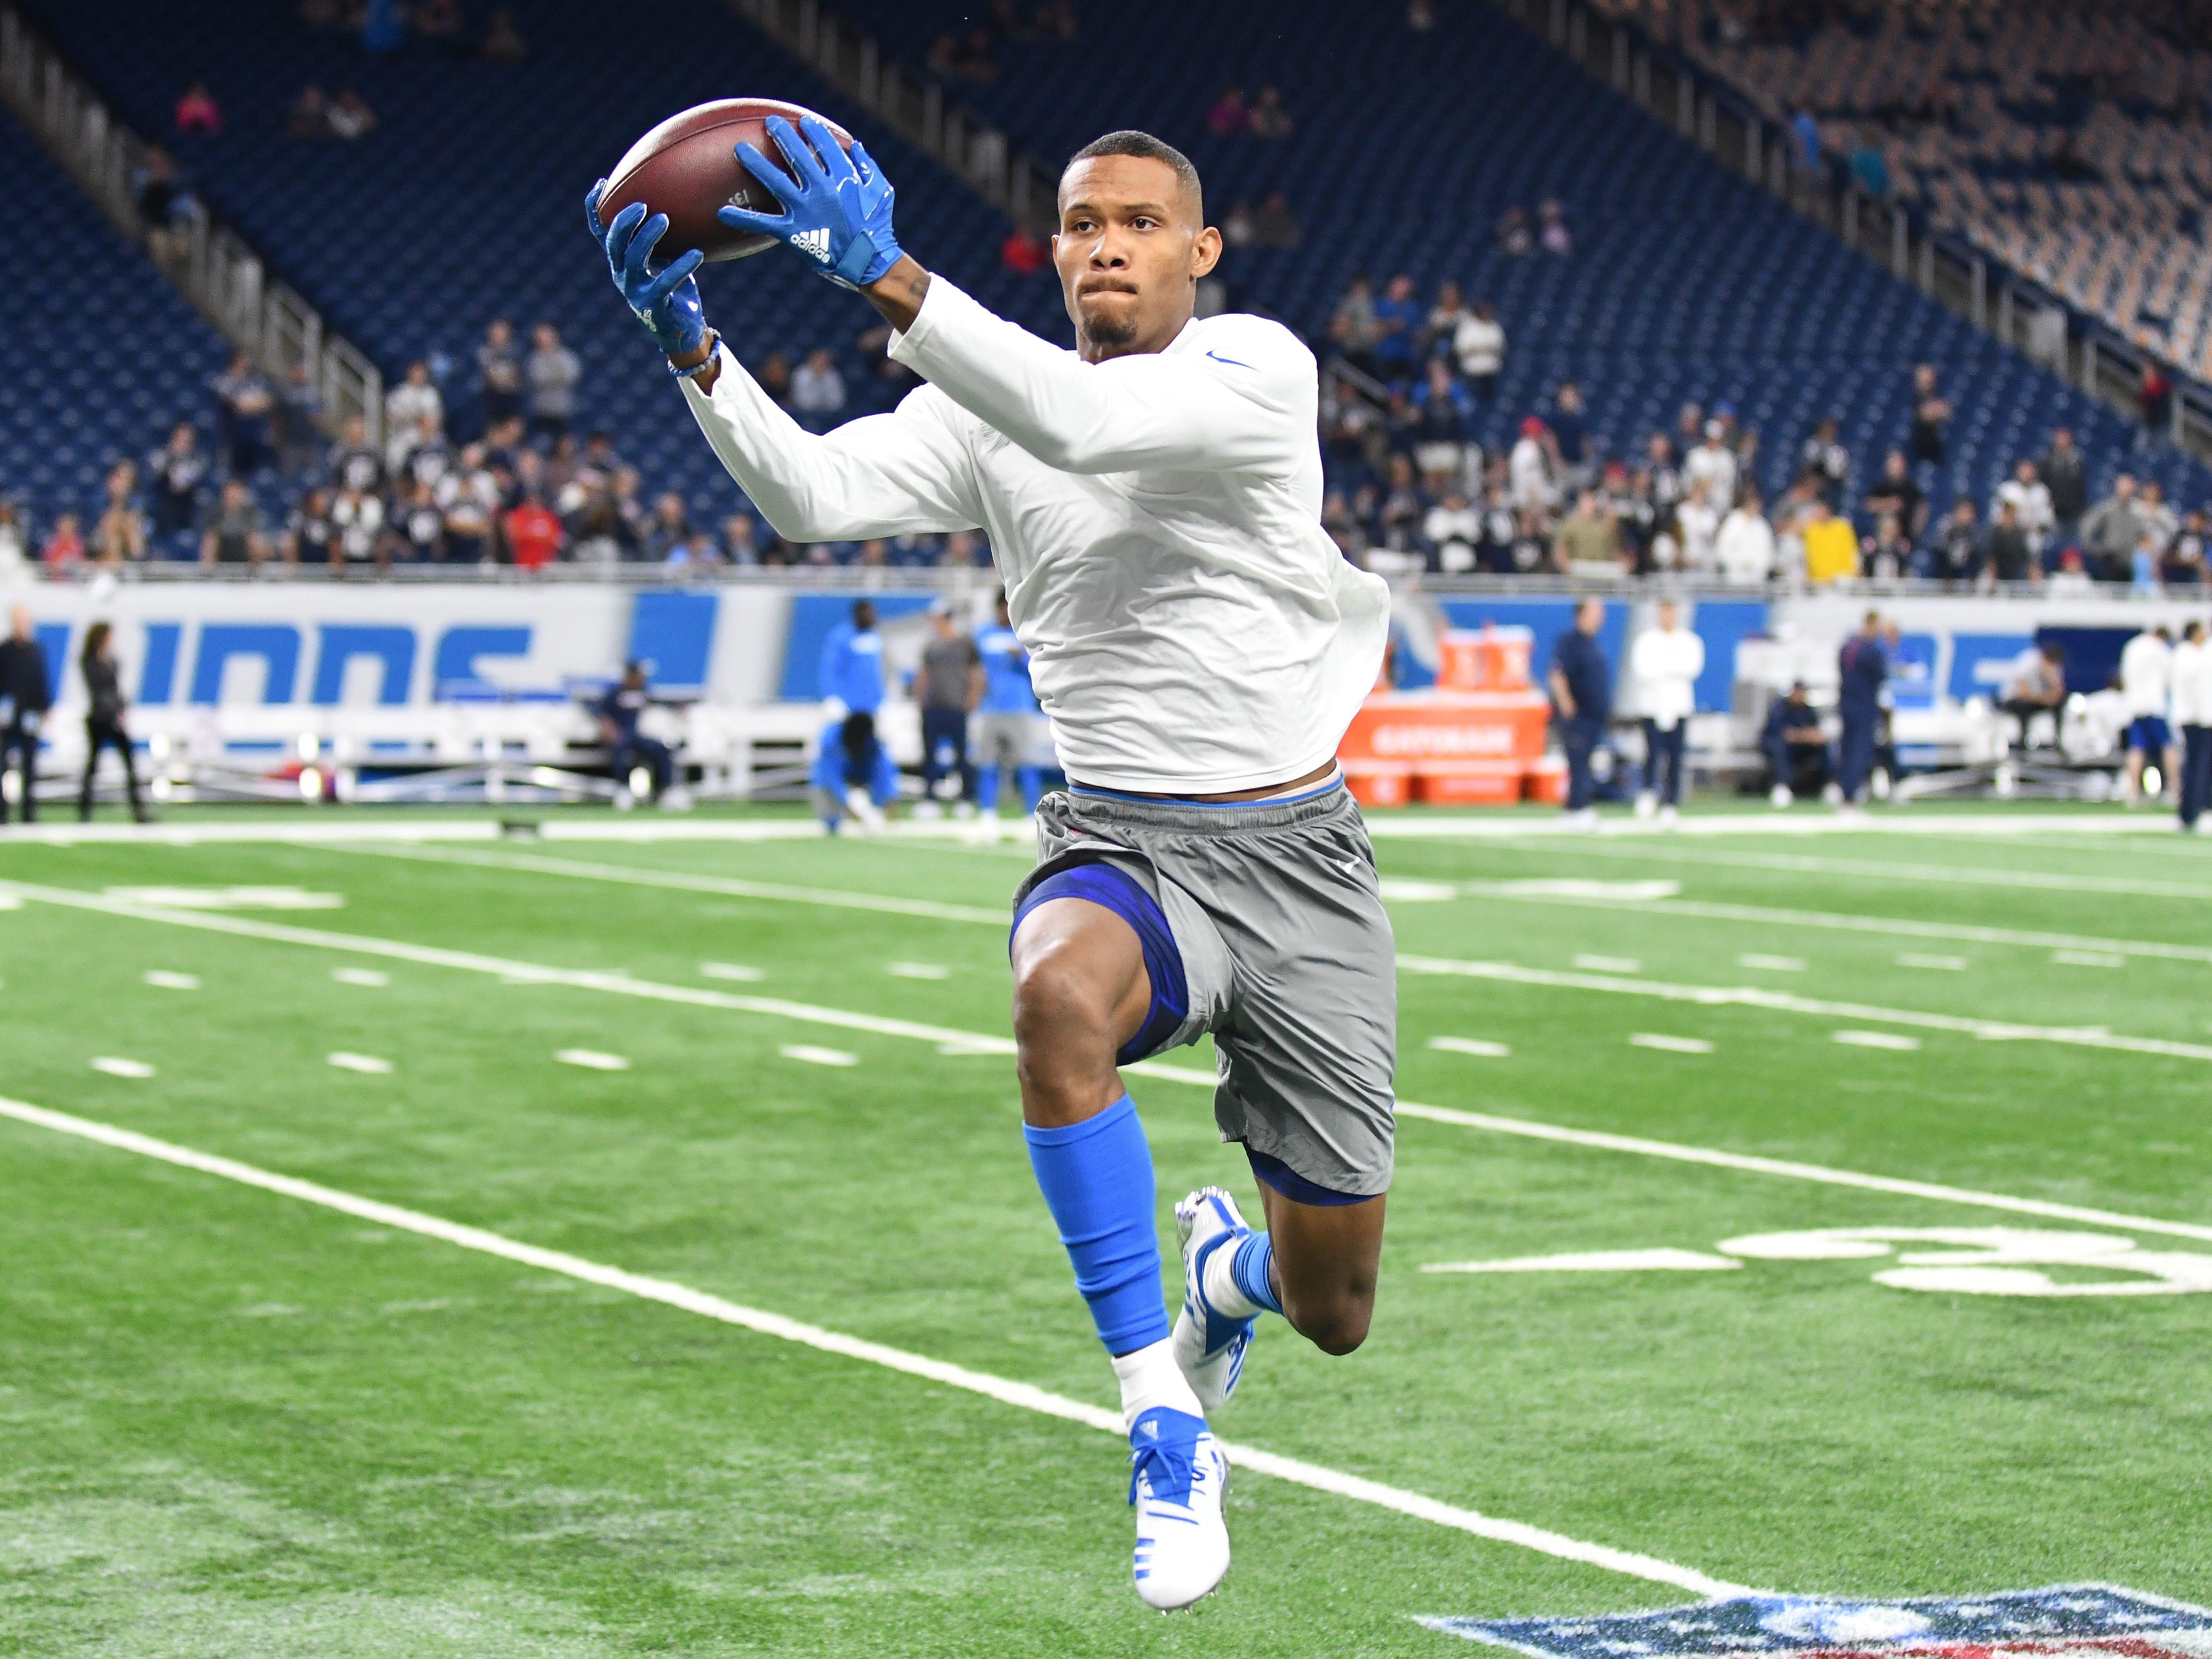 Lions wide receiver Kenny Golladay pulls in a reception during warmups. NFL Detroit Lions vs. New England Patriots art Ford Field in Detroit, Michigan on September 23, 2018.